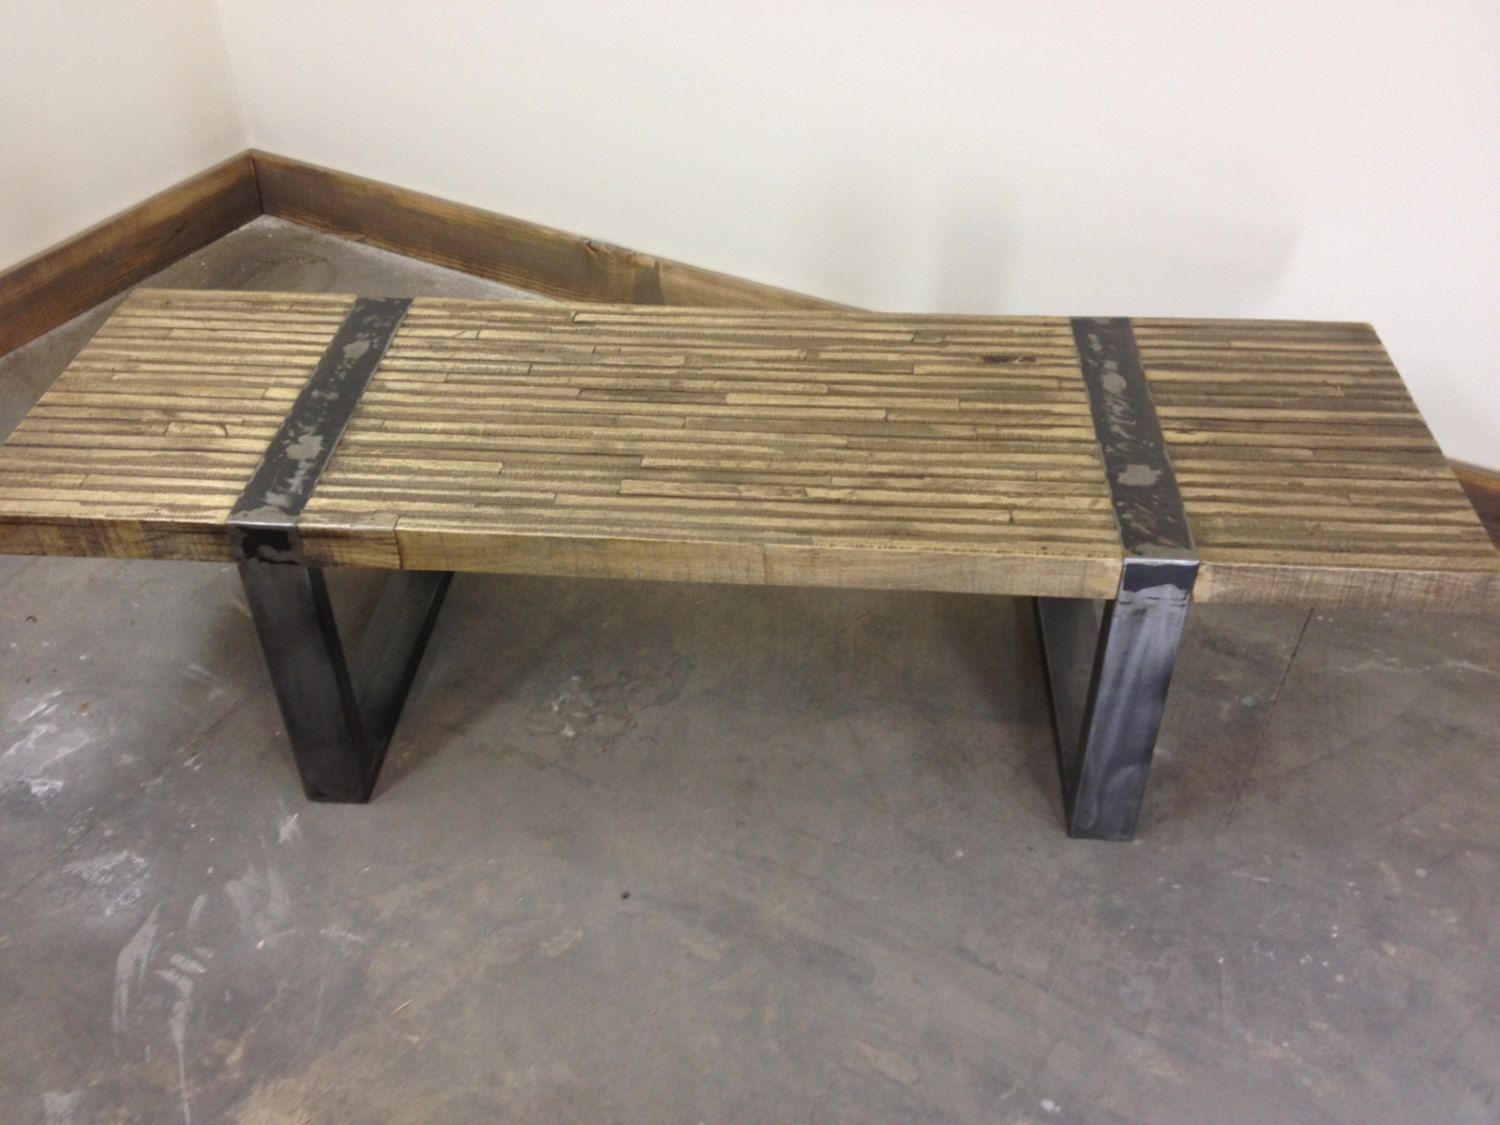 Beau Rustic Industrial Coffee Table Or Bench With Metal Bands By  MetalTreeFurniture On Etsy